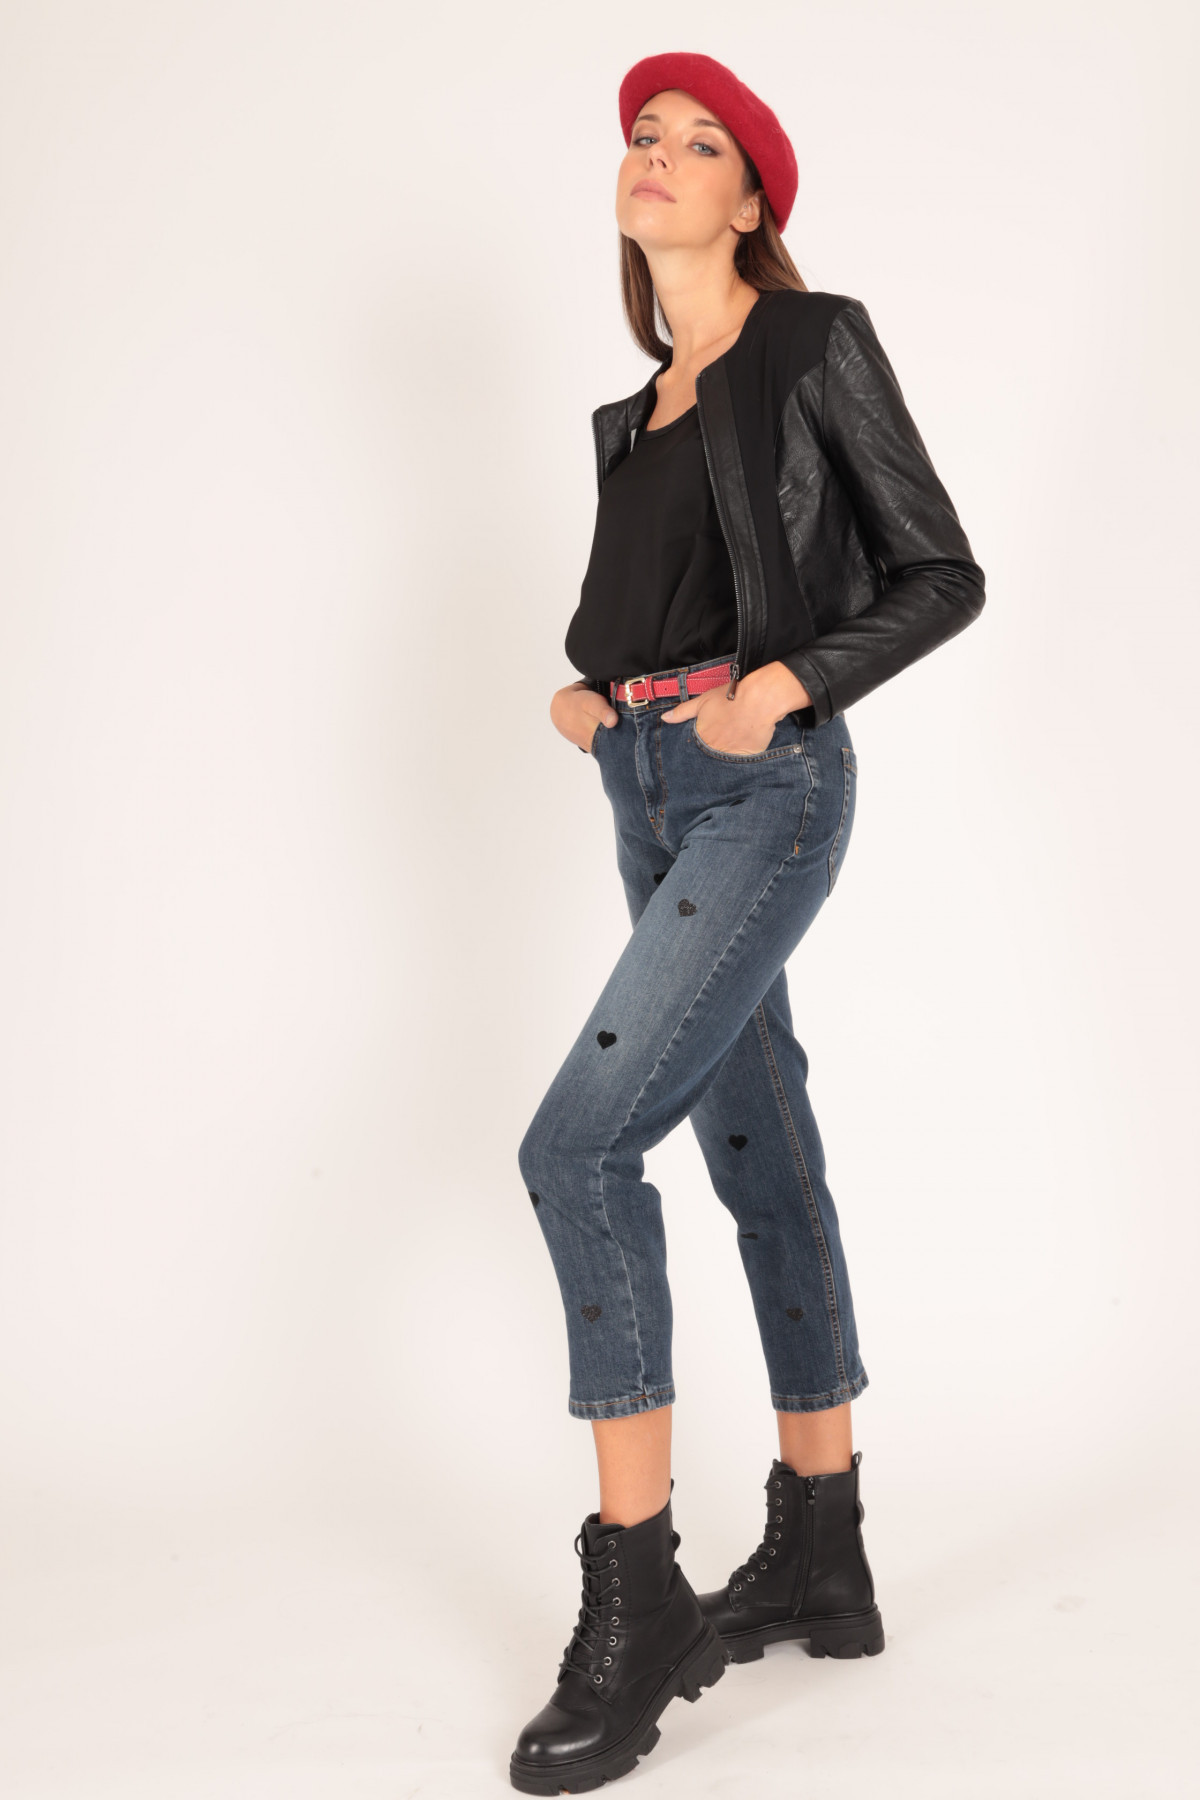 5 Pockets Jeans with Heart Flocked Applications